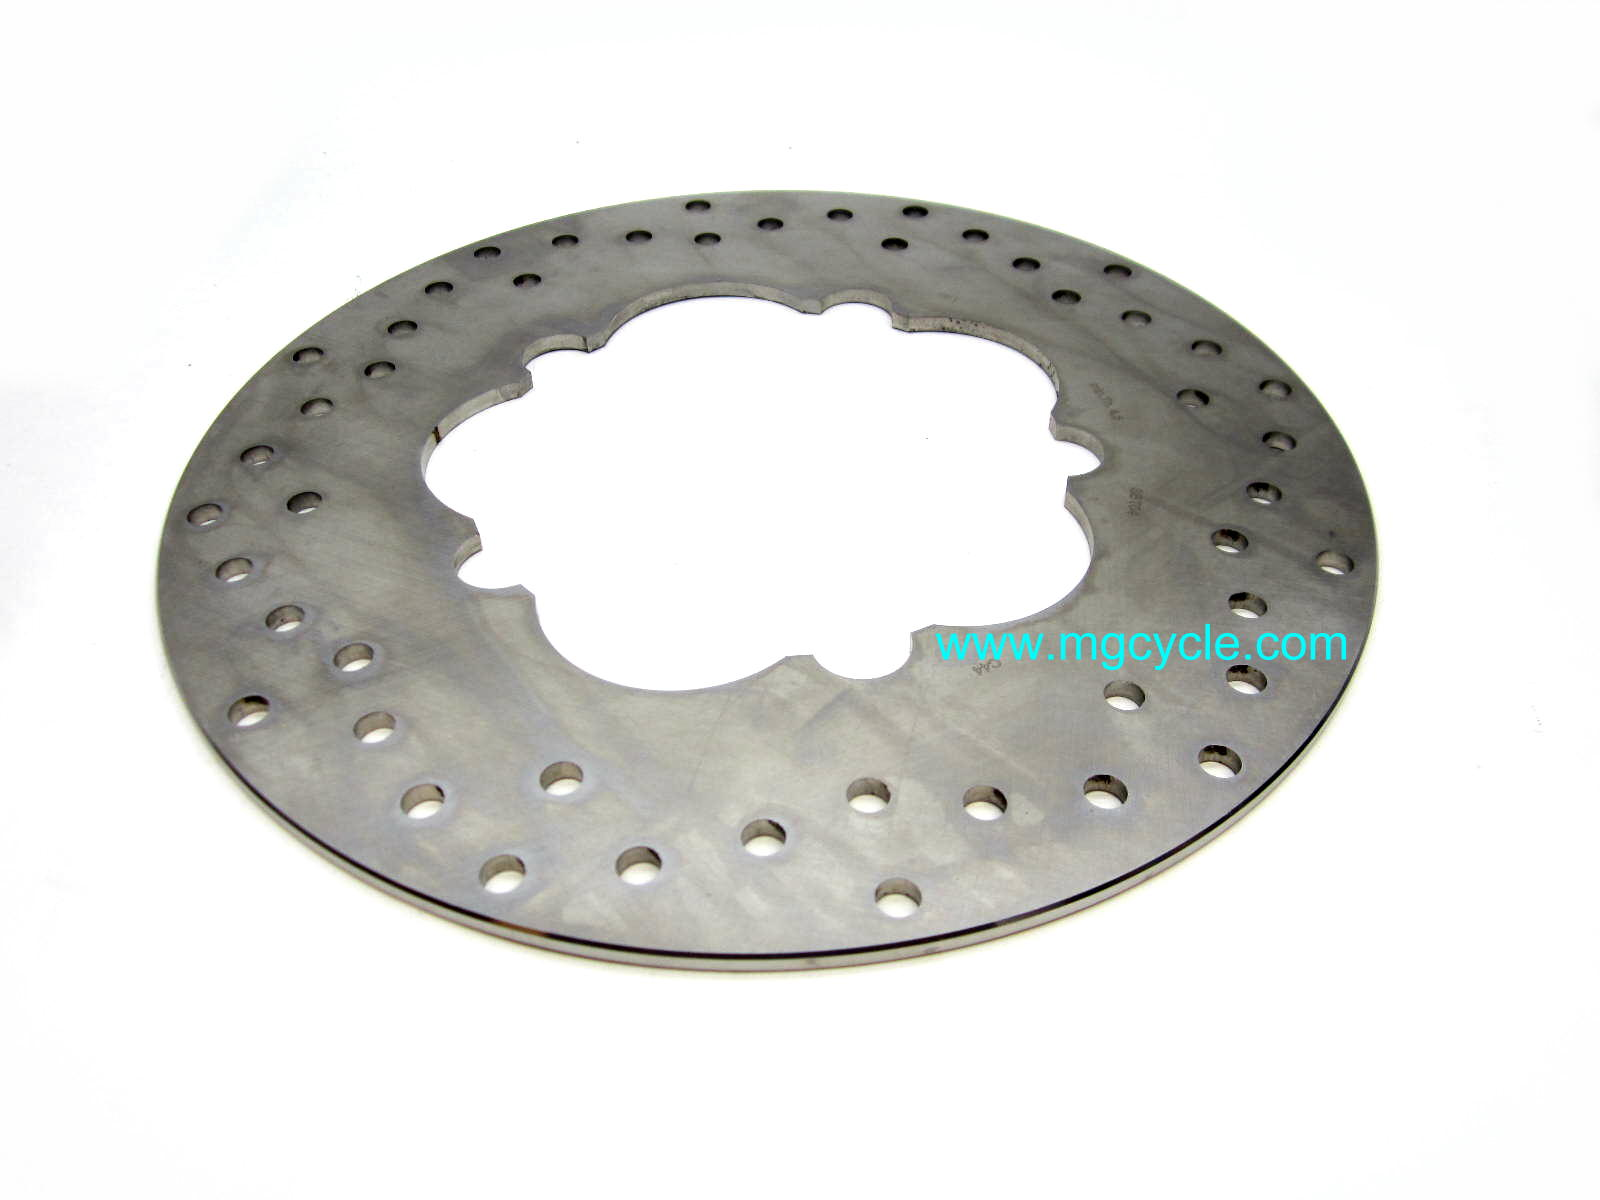 300mm front brake disk, California III, Cal 1100 etc